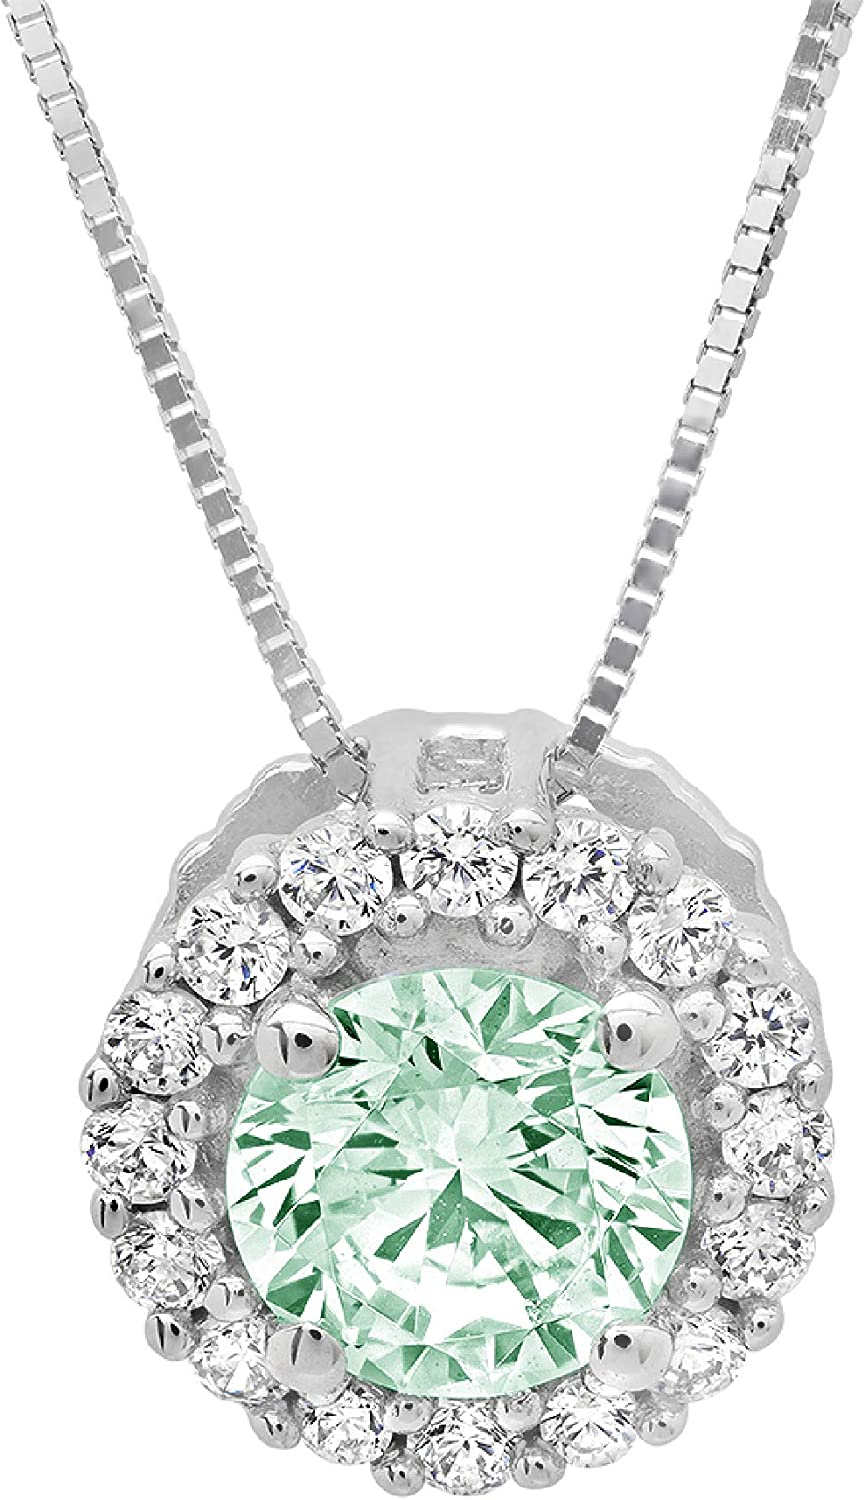 Pink Sapphire Solitaire Pendant Necklace in Solid Sterling Silver 1.25 ct